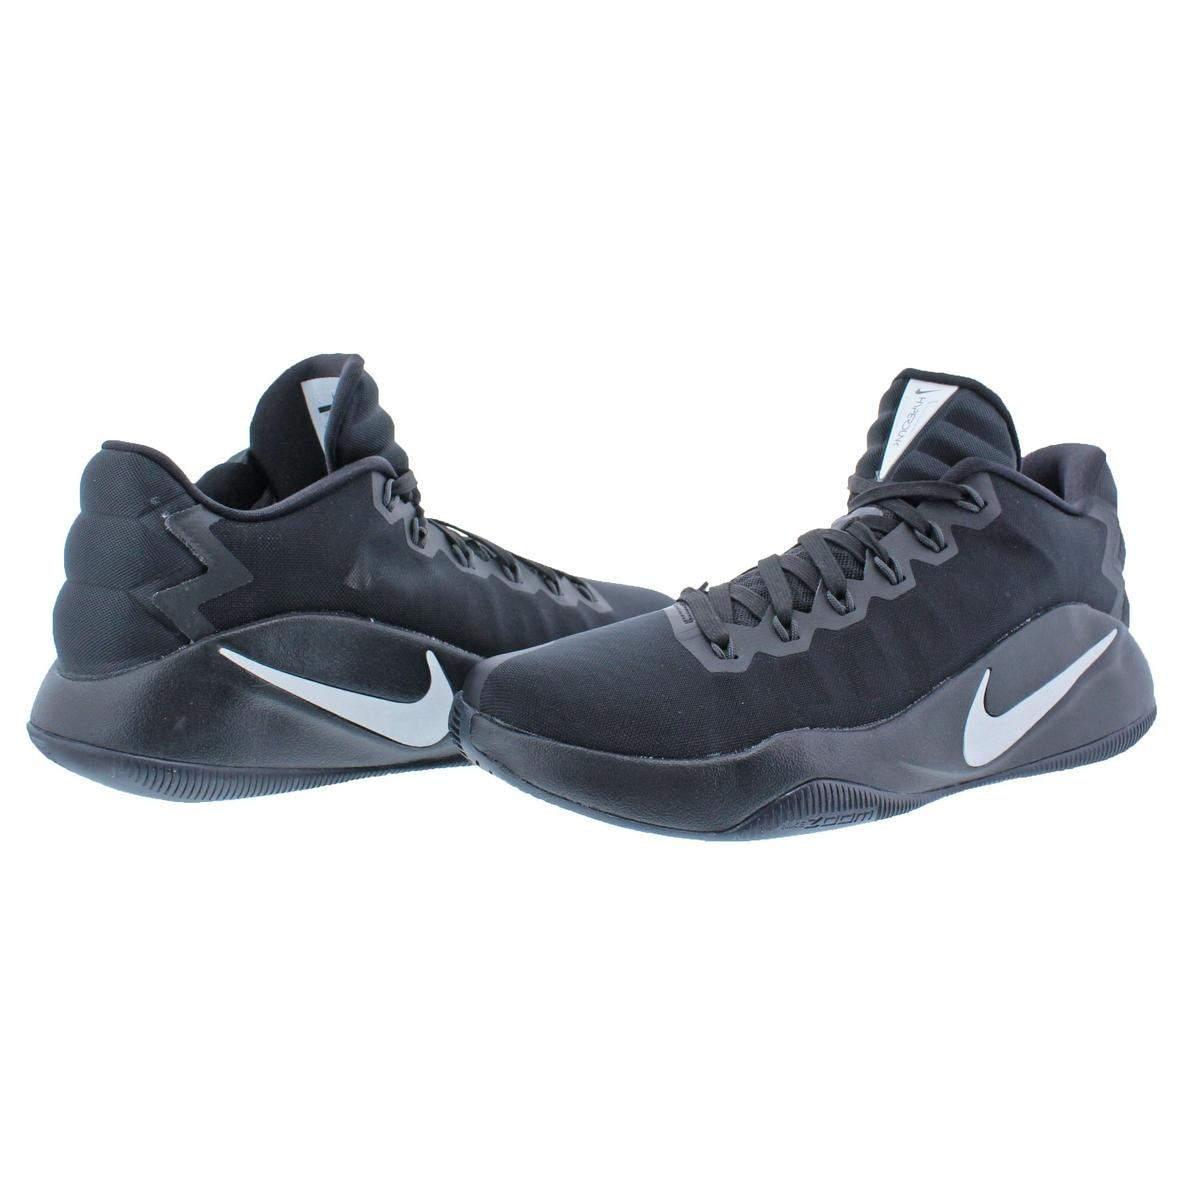 detailed look a8a69 2efec Shop Nike Mens Hyperdunk 2016 Low Basketball Shoes Athletic Low-Top - 9  medium (d) - Free Shipping Today - Overstock - 22311640